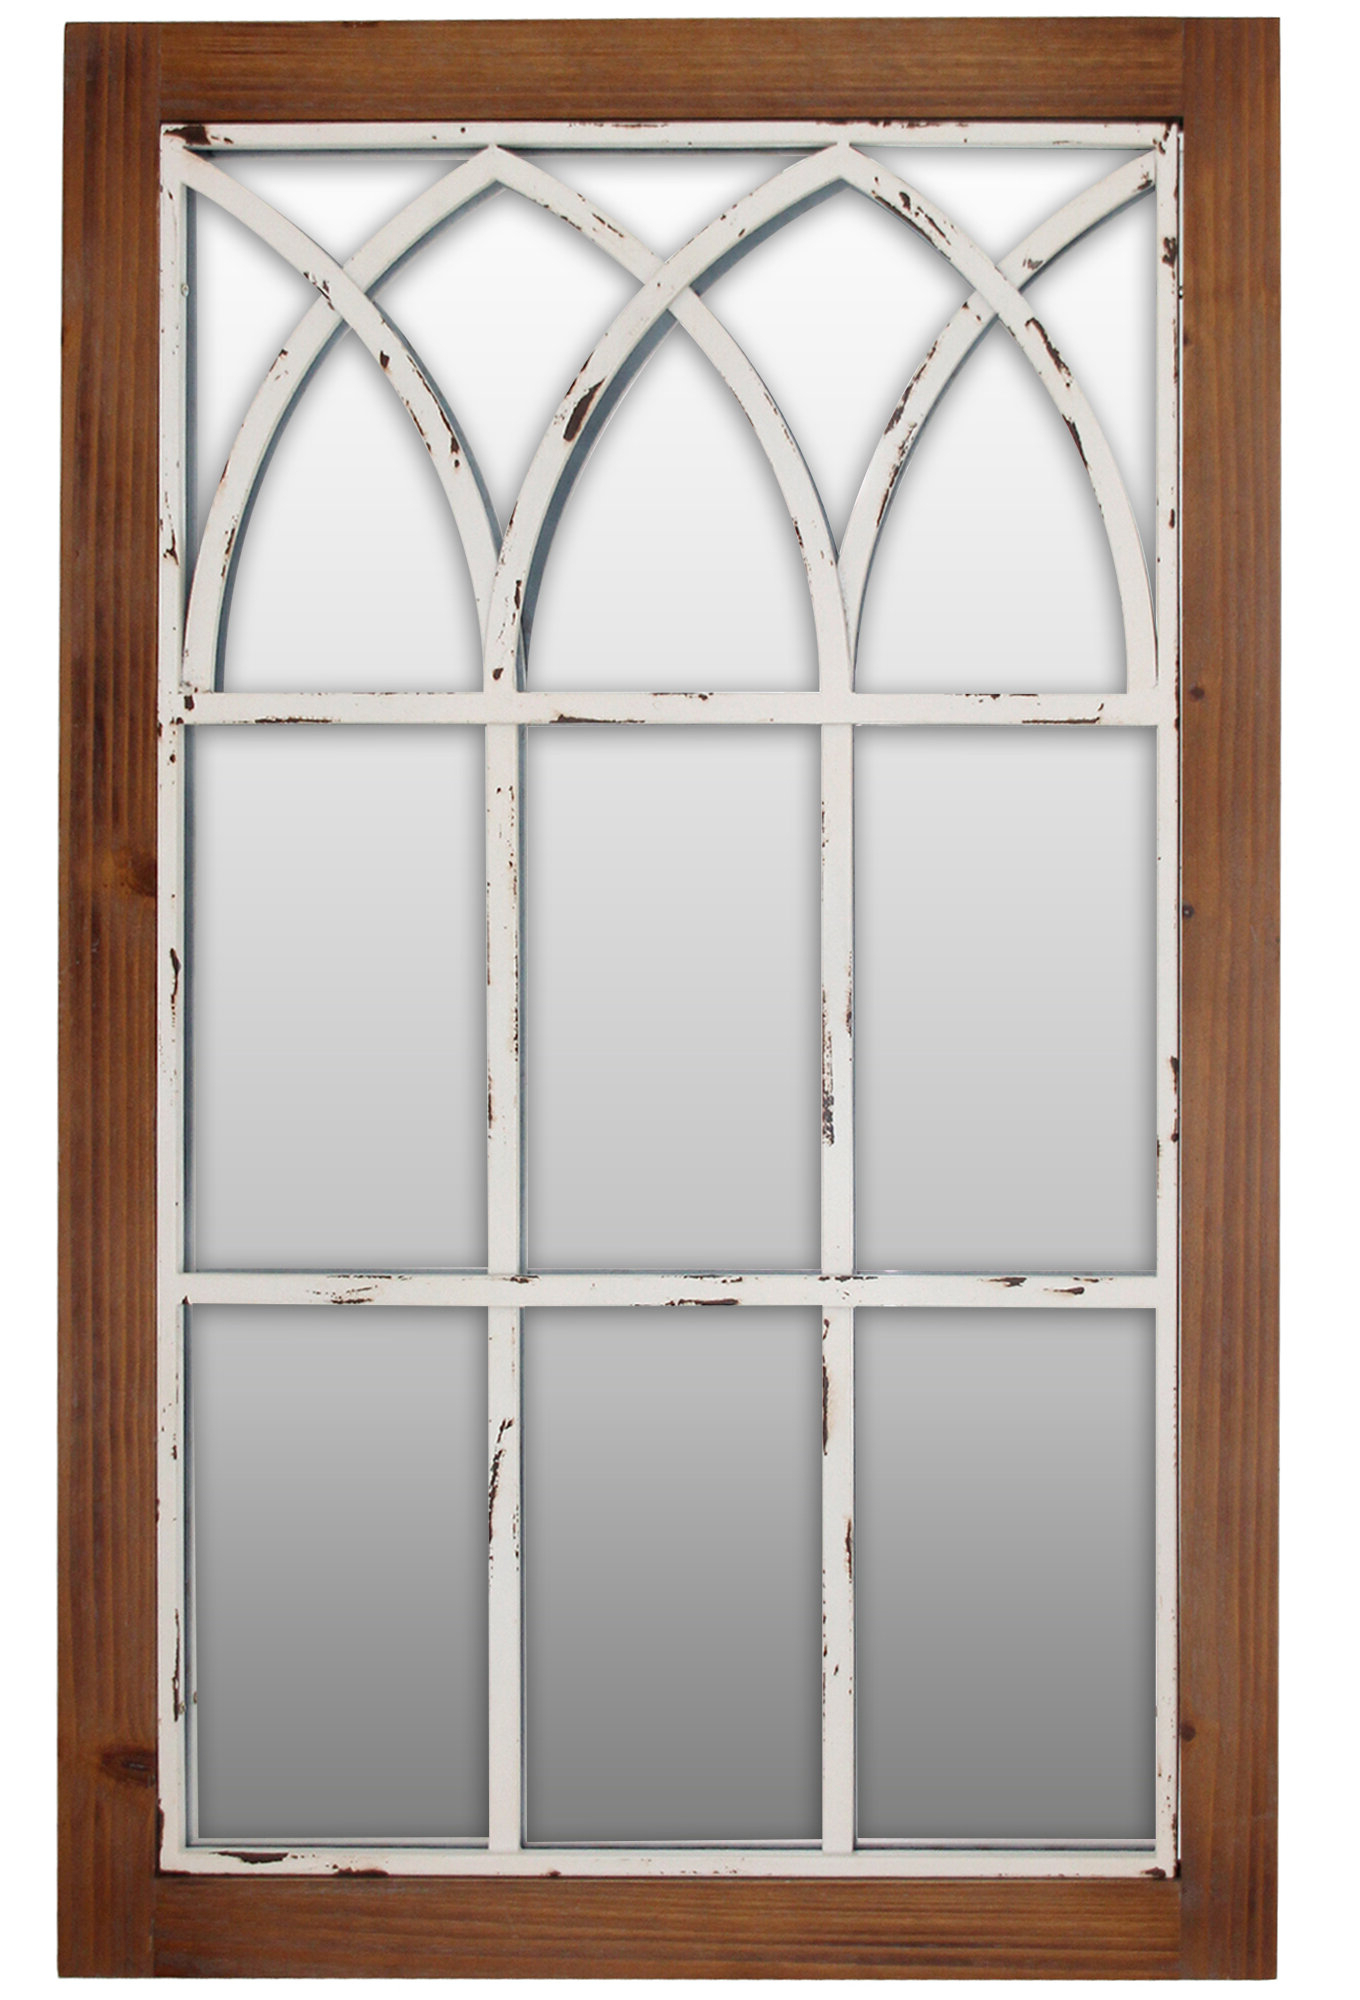 Famous 2 Piece Kissena Window Pane Accent Mirror Sets Regarding Embry Arched Window Traditional Accent Mirror (View 10 of 20)